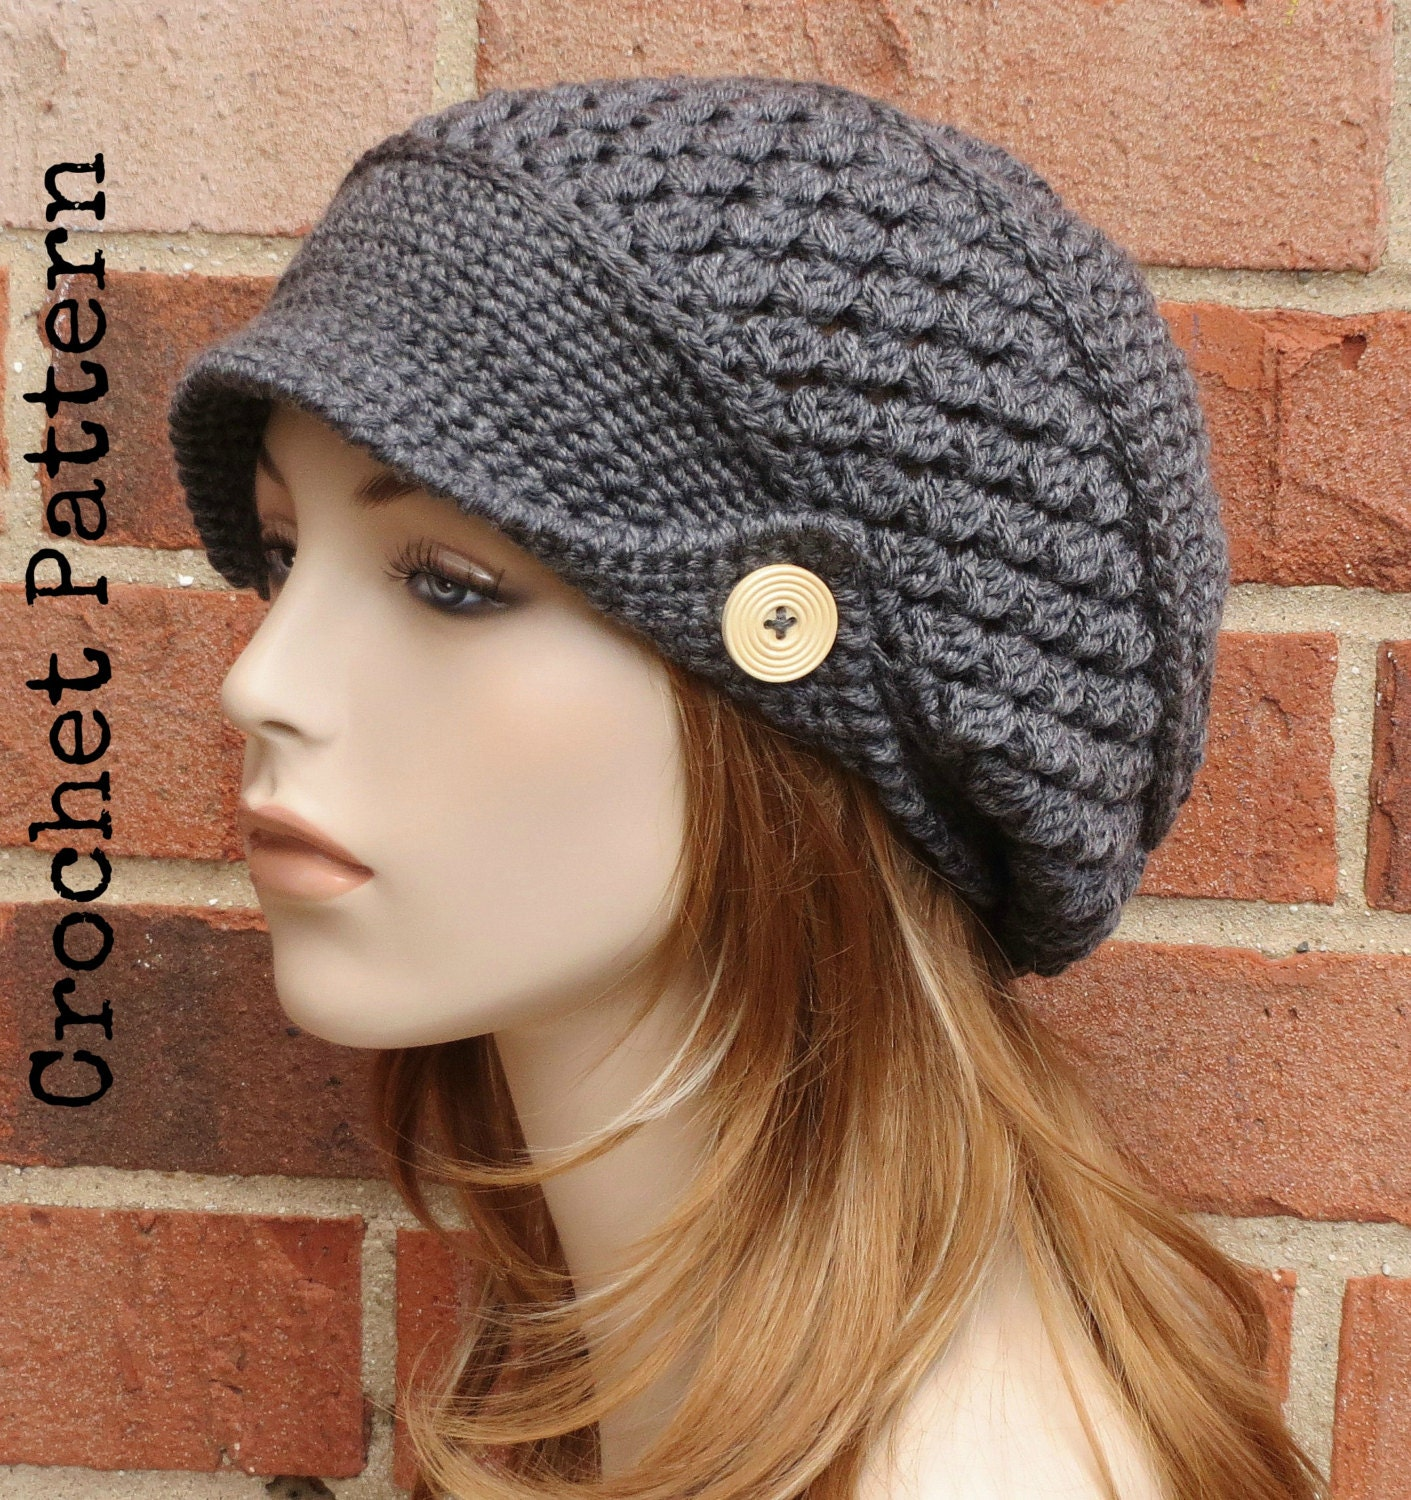 Crochet Hat Free Pattern Woman : CROCHET HAT PATTERN Instant Download Pdf Finley Newsboy